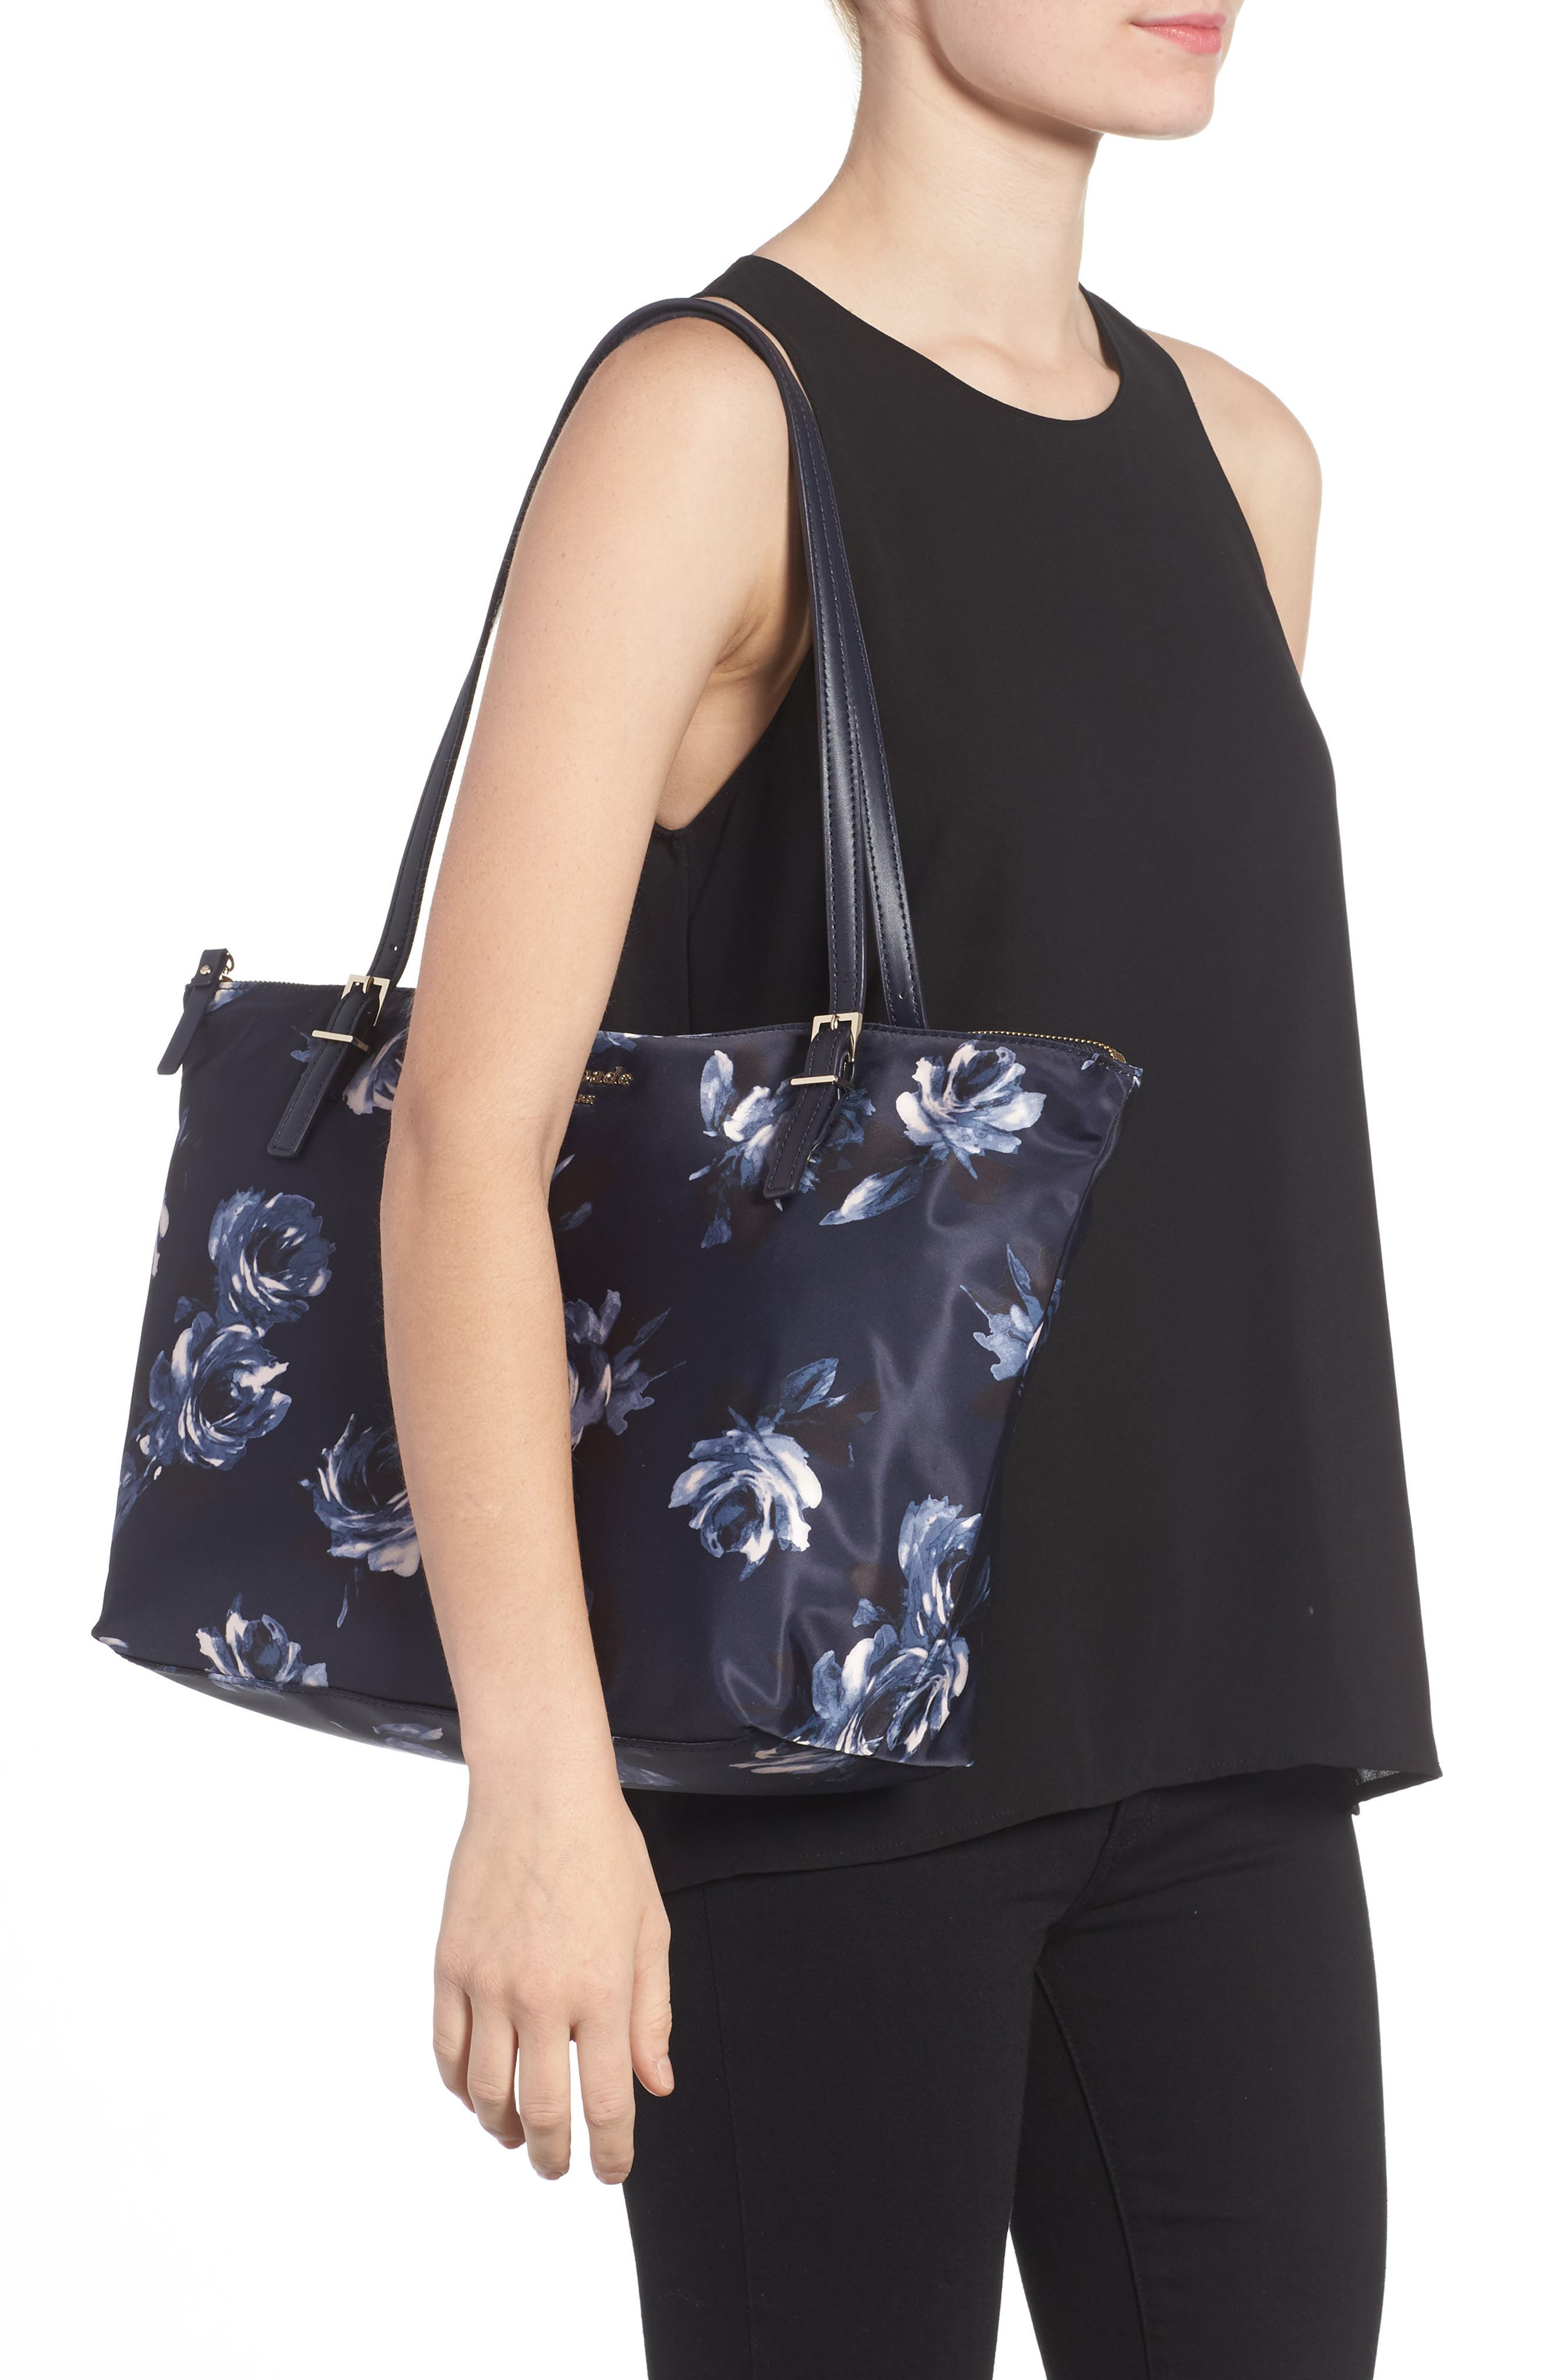 watson lane - night rose maya tote,                             Alternate thumbnail 2, color,                             485